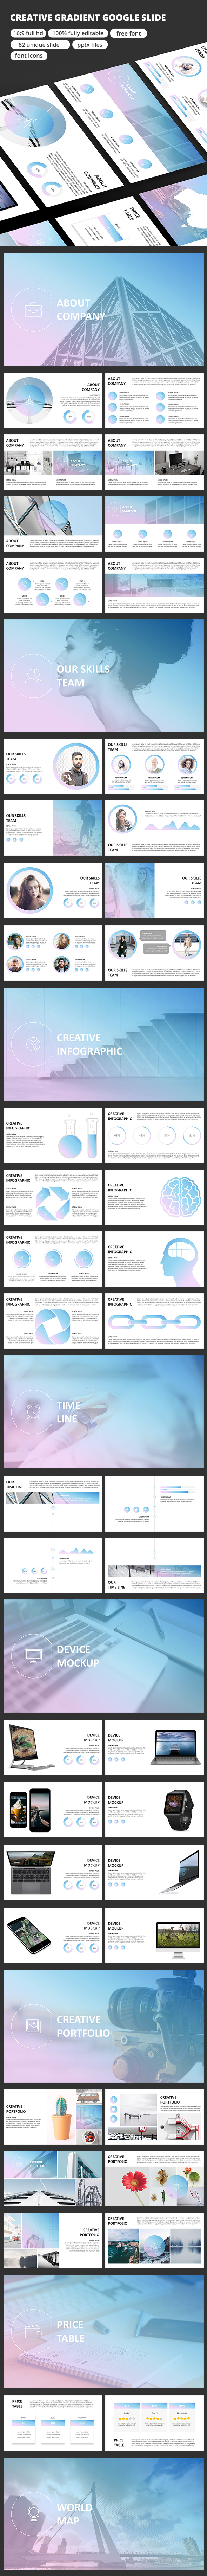 Creative Gradient - Google Slide - Google Slides Presentation Templates